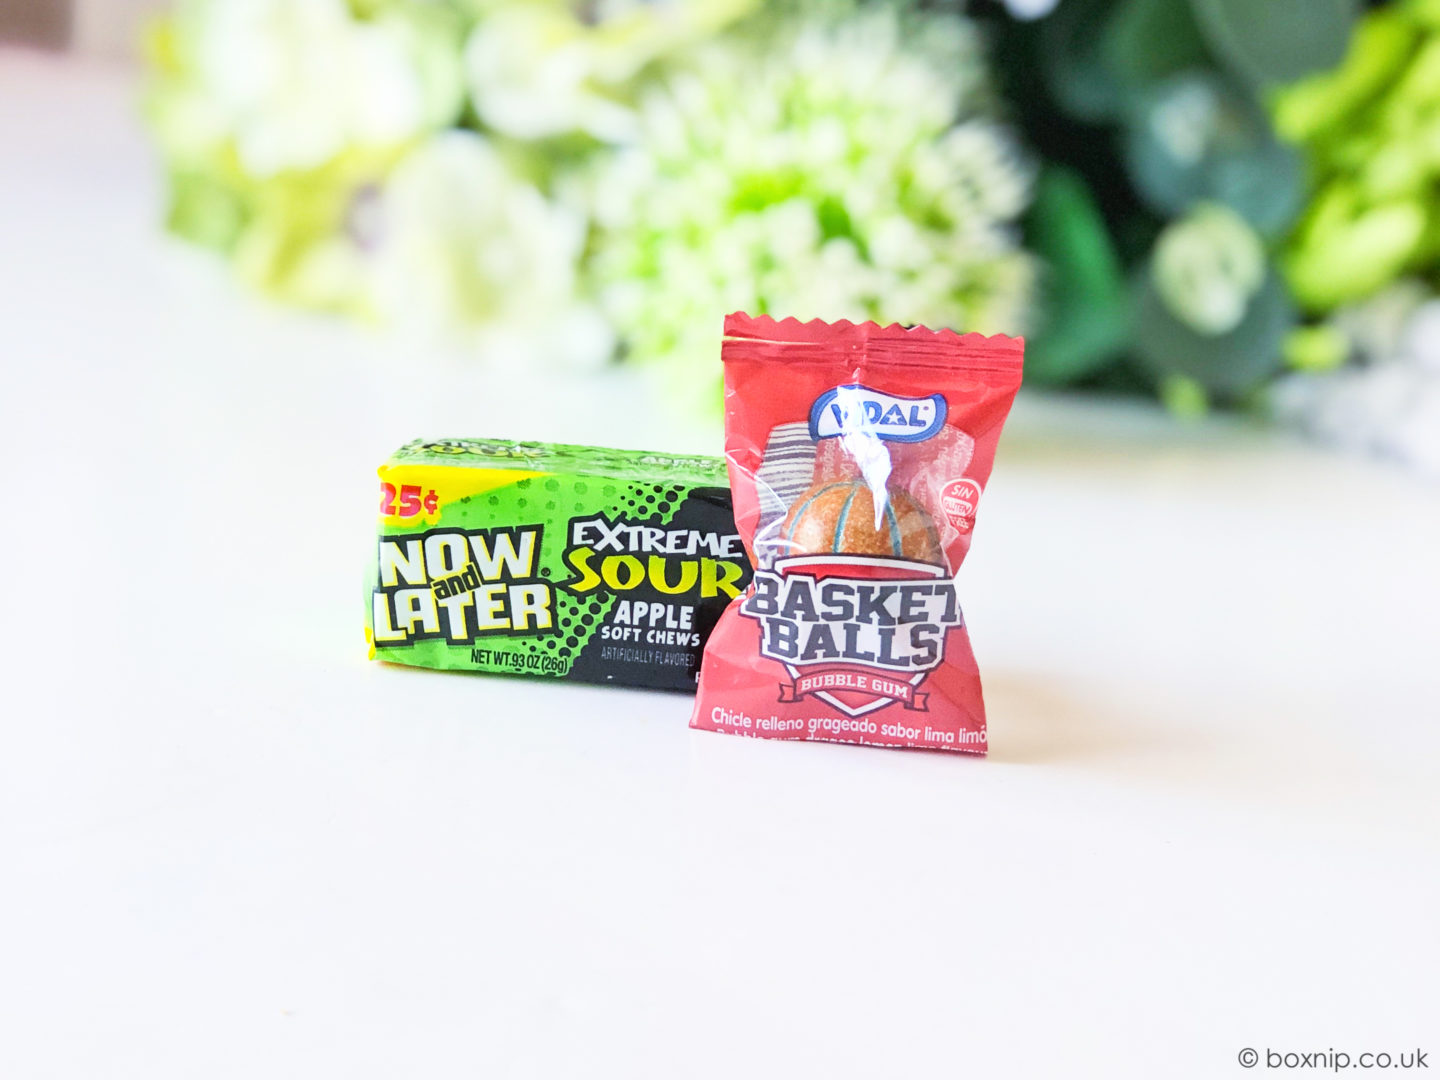 Now and Later Extreme Sour Apple soft chews and Vidal Basket Balls Bubble gum - Taffymail American Candy Subscription bo